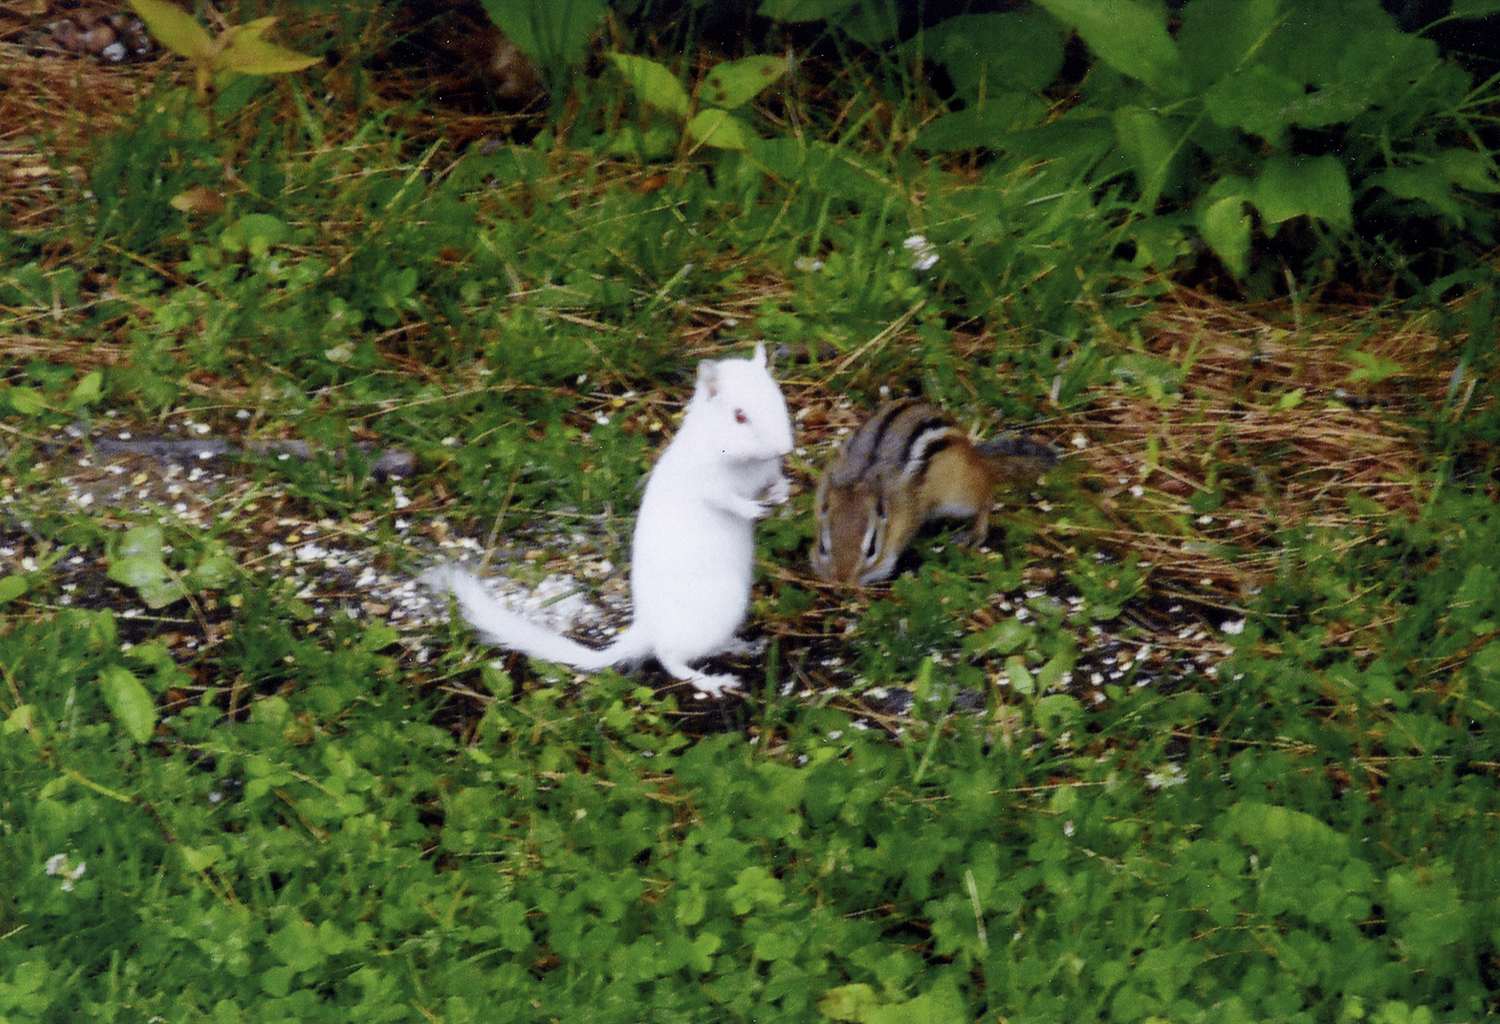 These chipmunks could be cousins, but who knows. They certainly are having fun foraging in the Casco yard of Curtis Delaney.